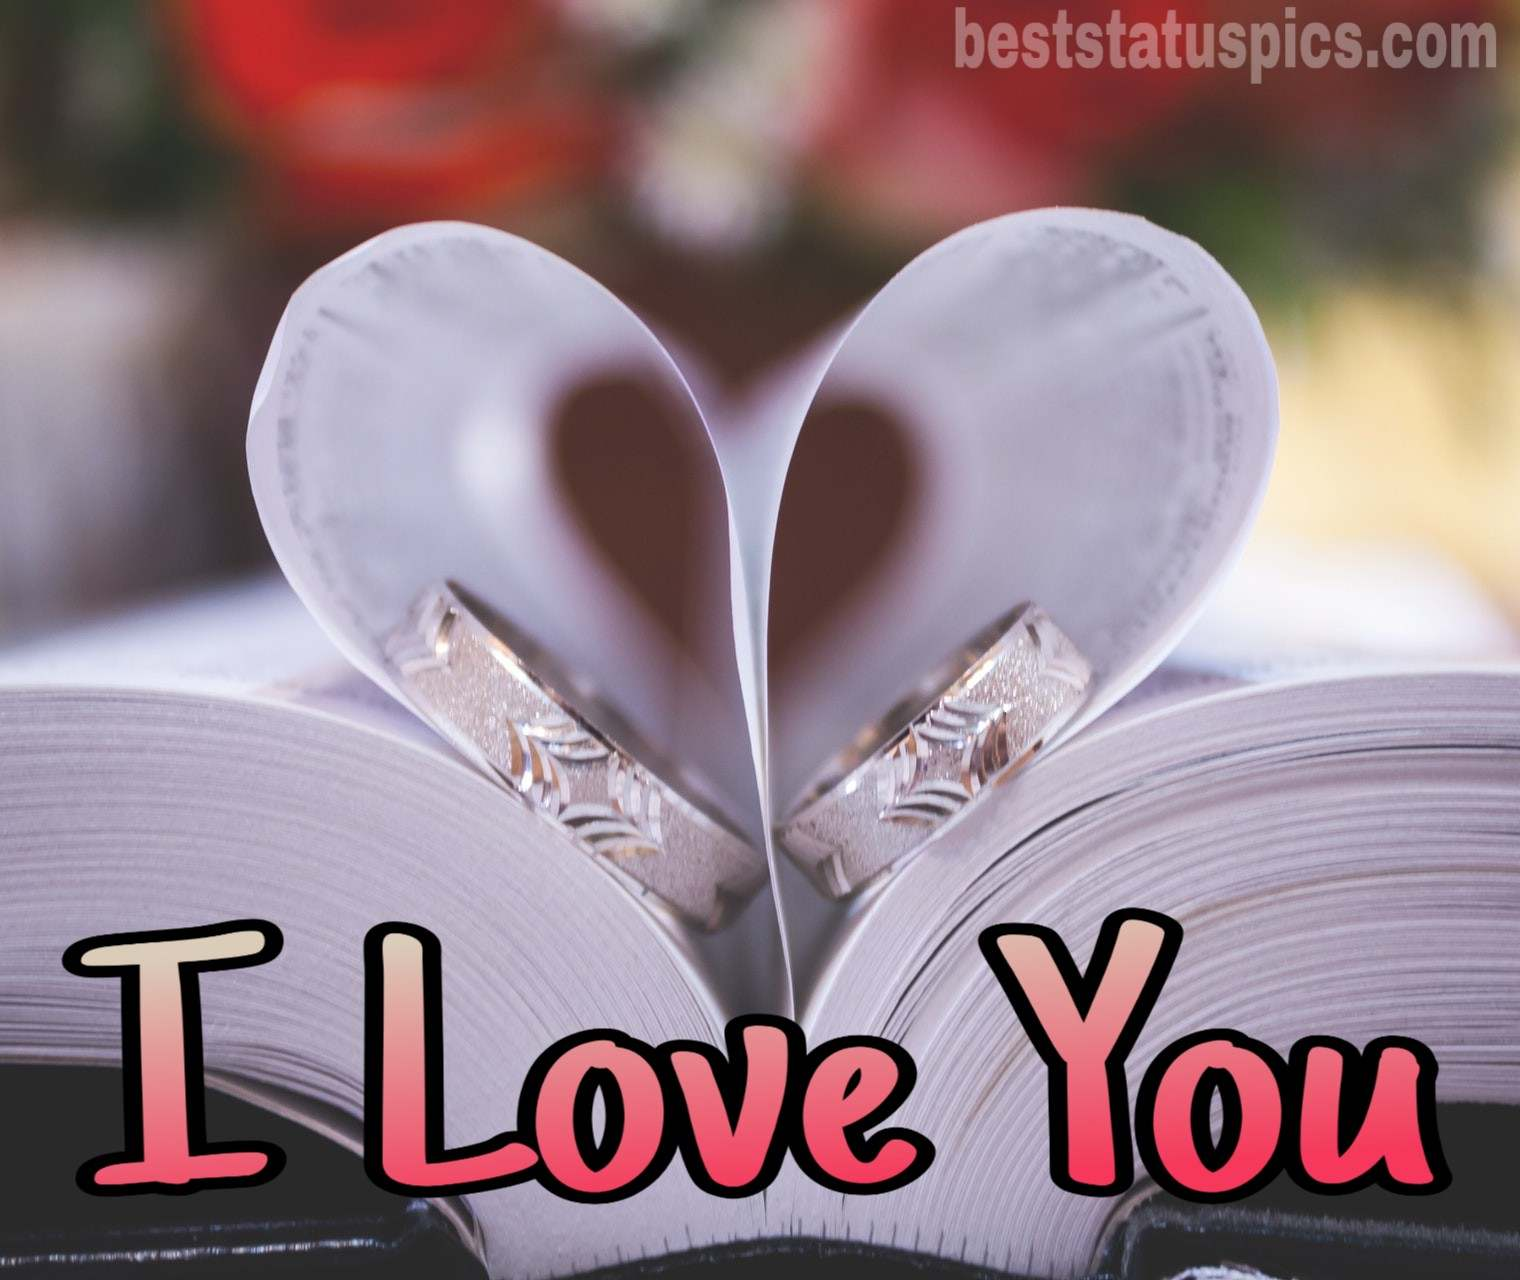 New I Love You Whatsapp DP, Pictures, HD Images, Photo | Best Status Pics